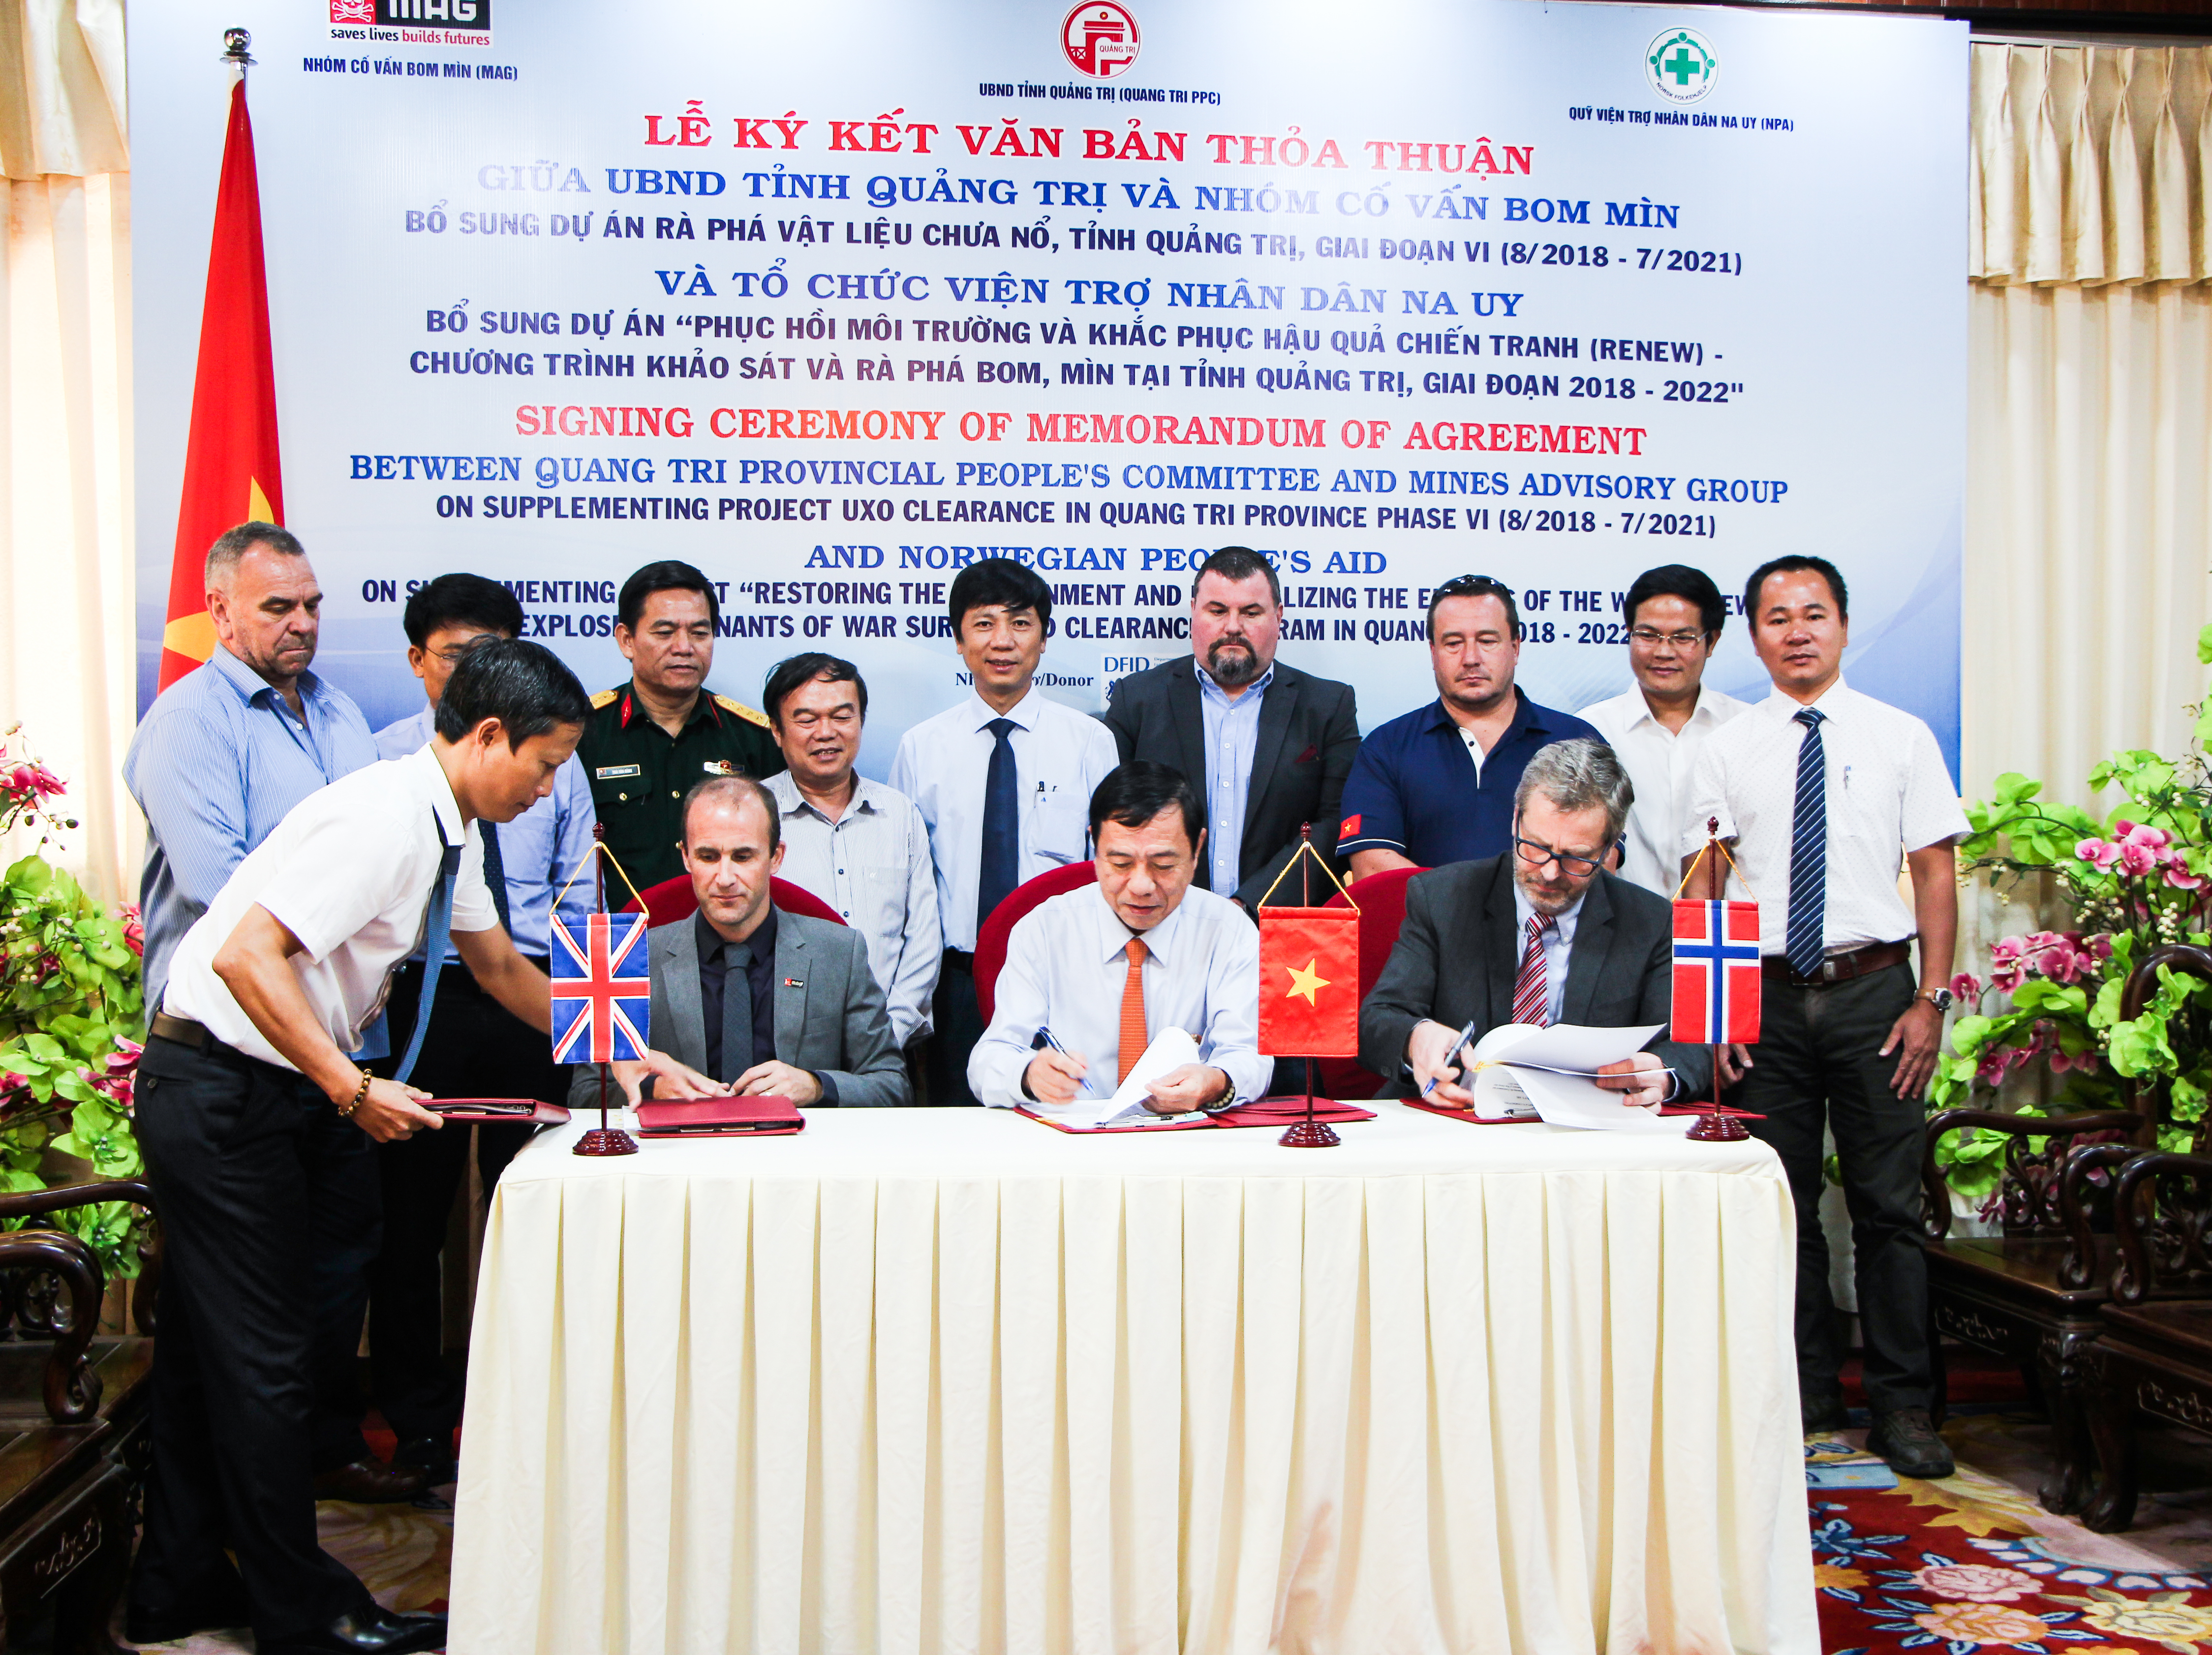 Quang Tri Province People's Committee signs an Memorandum of Agreement with Norwegian People's Aid and Mines Advisory Group on UK funding for the survey and clearance efforts.